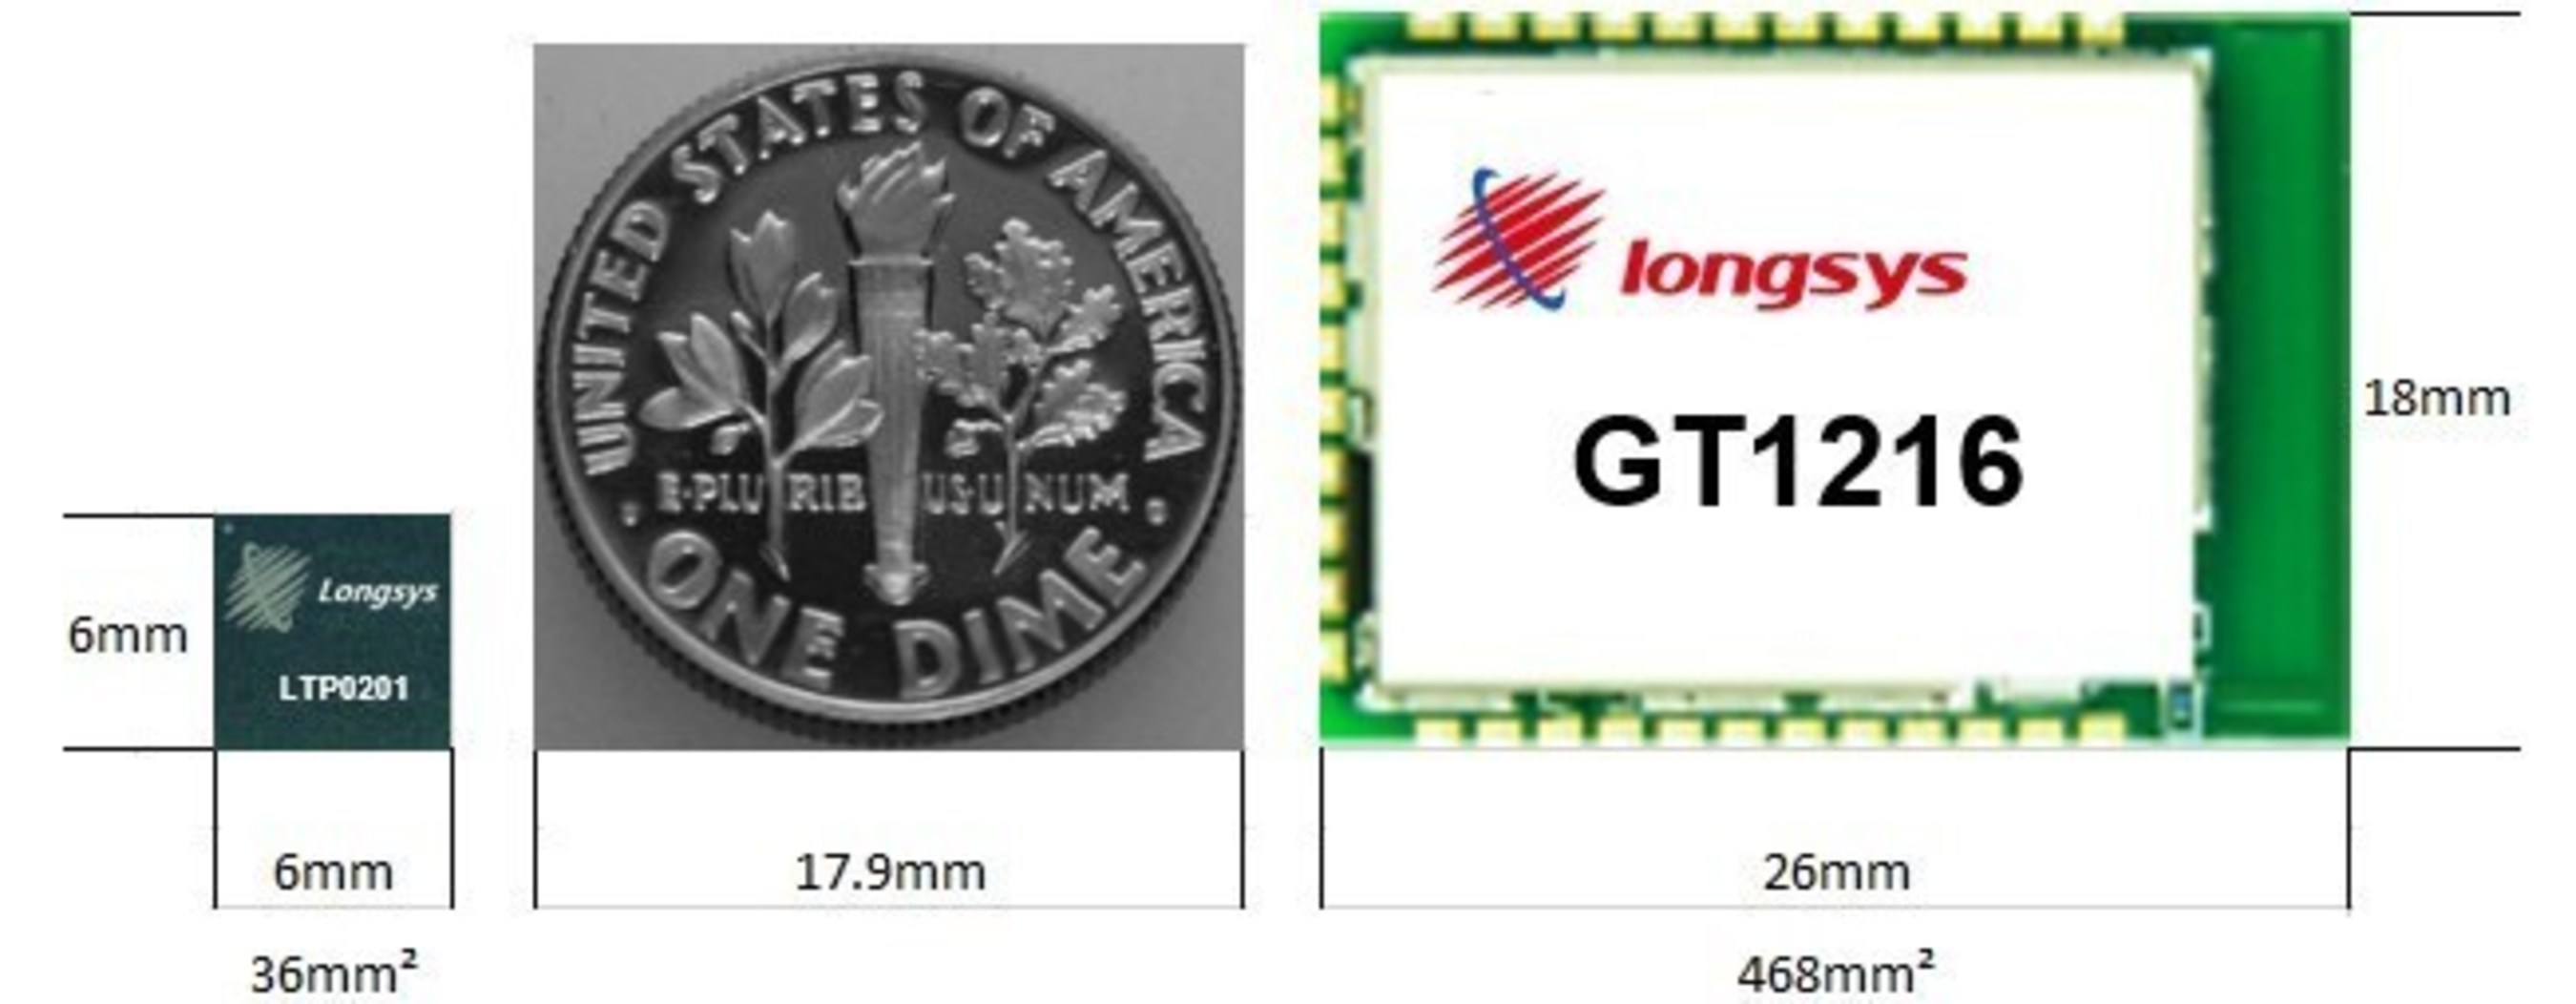 6mm x 6mm, Longsys Technology launches the world's smallest IoT WiFi